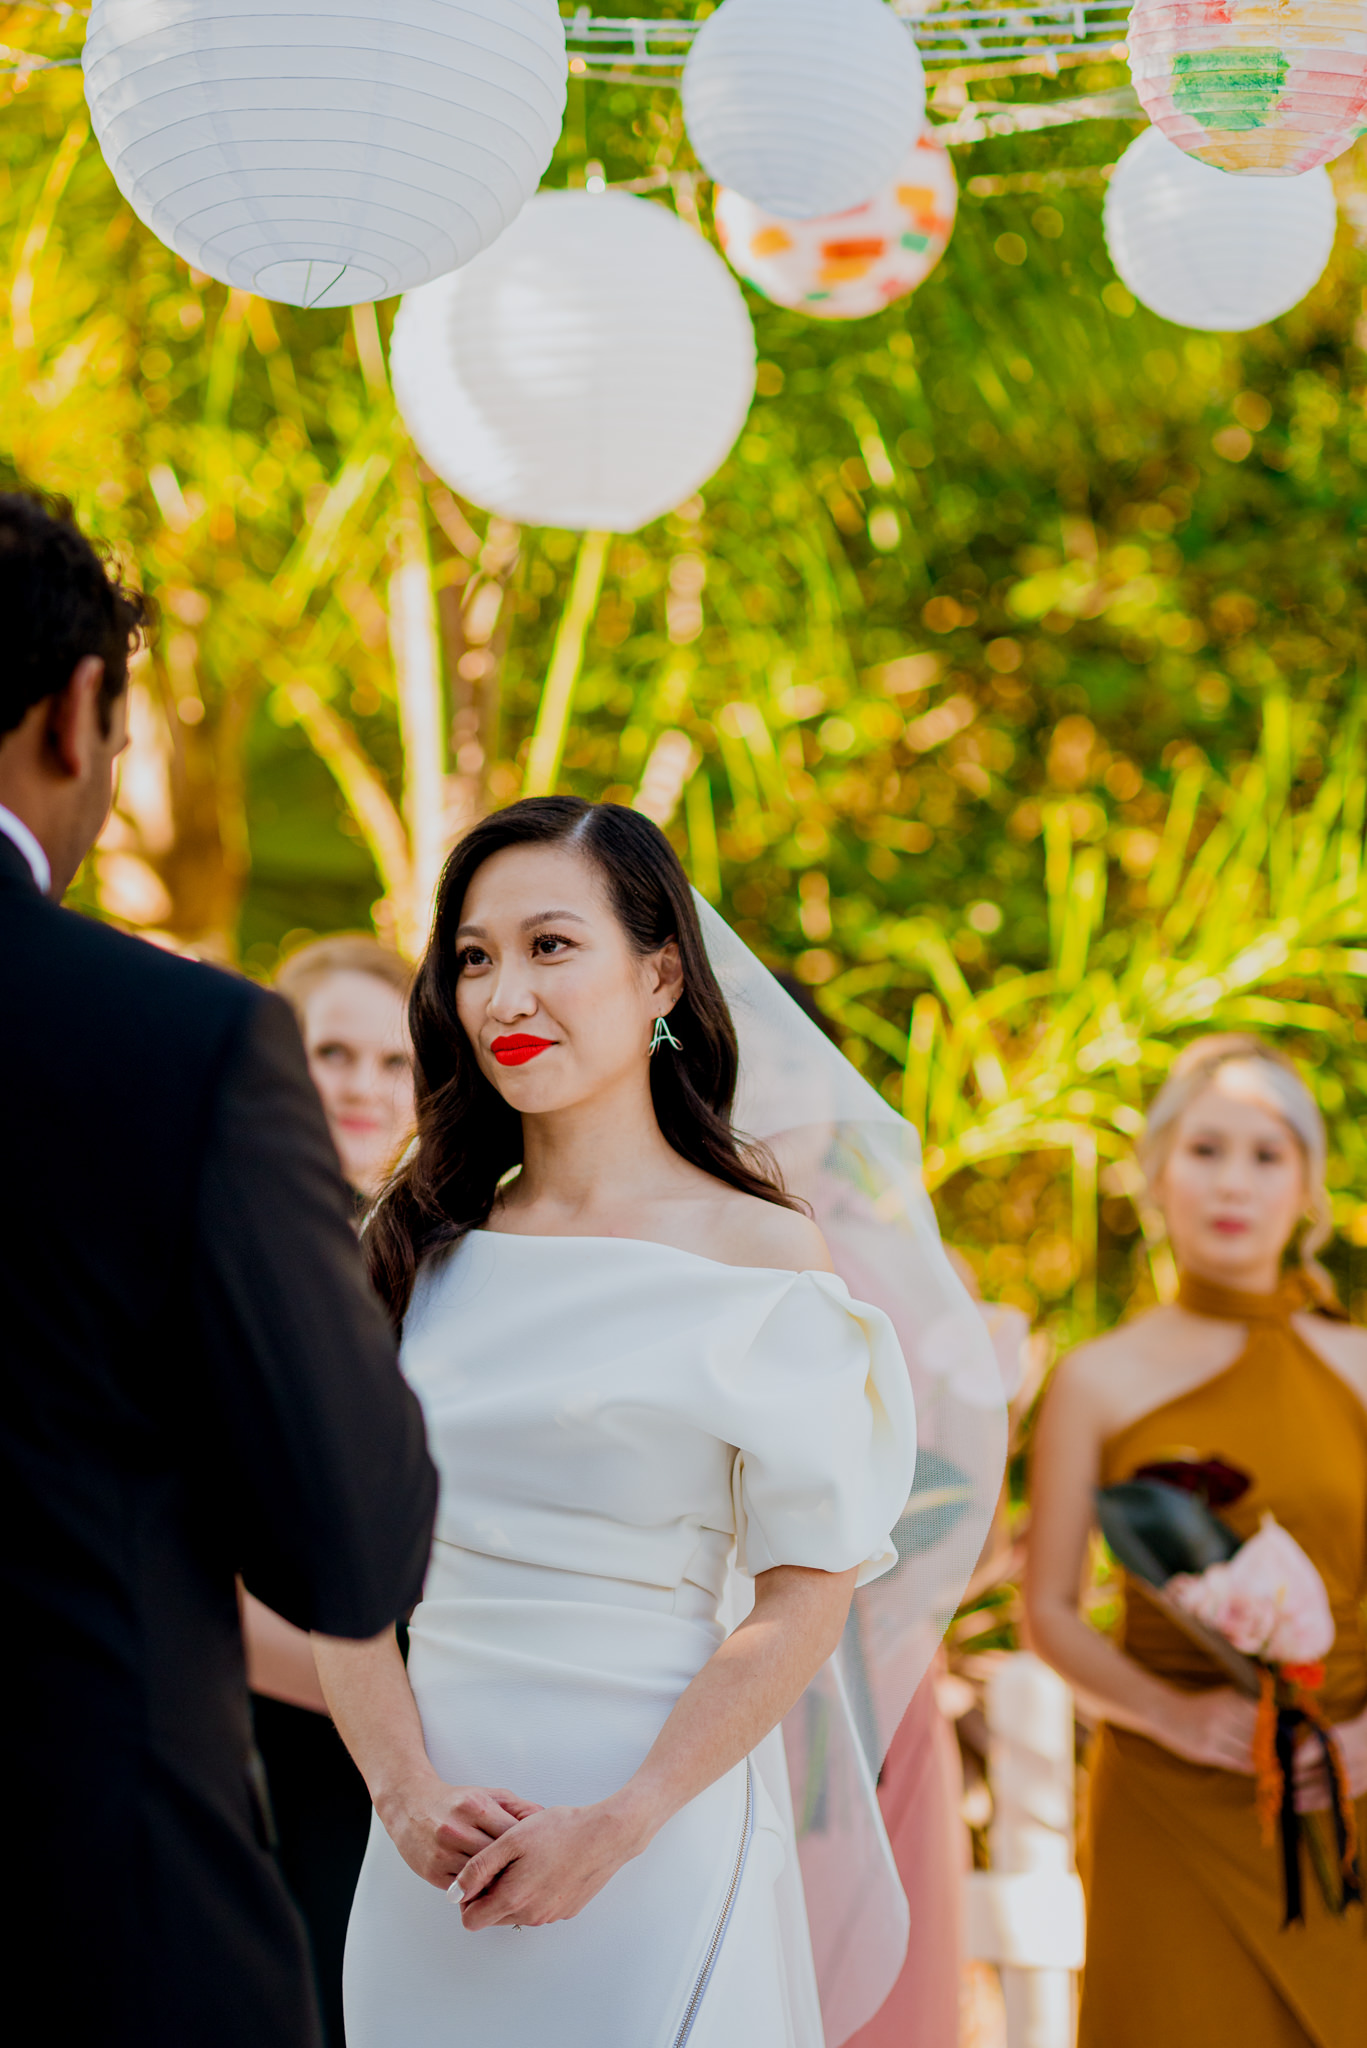 Asian bride listens to vows during wedding ceremony